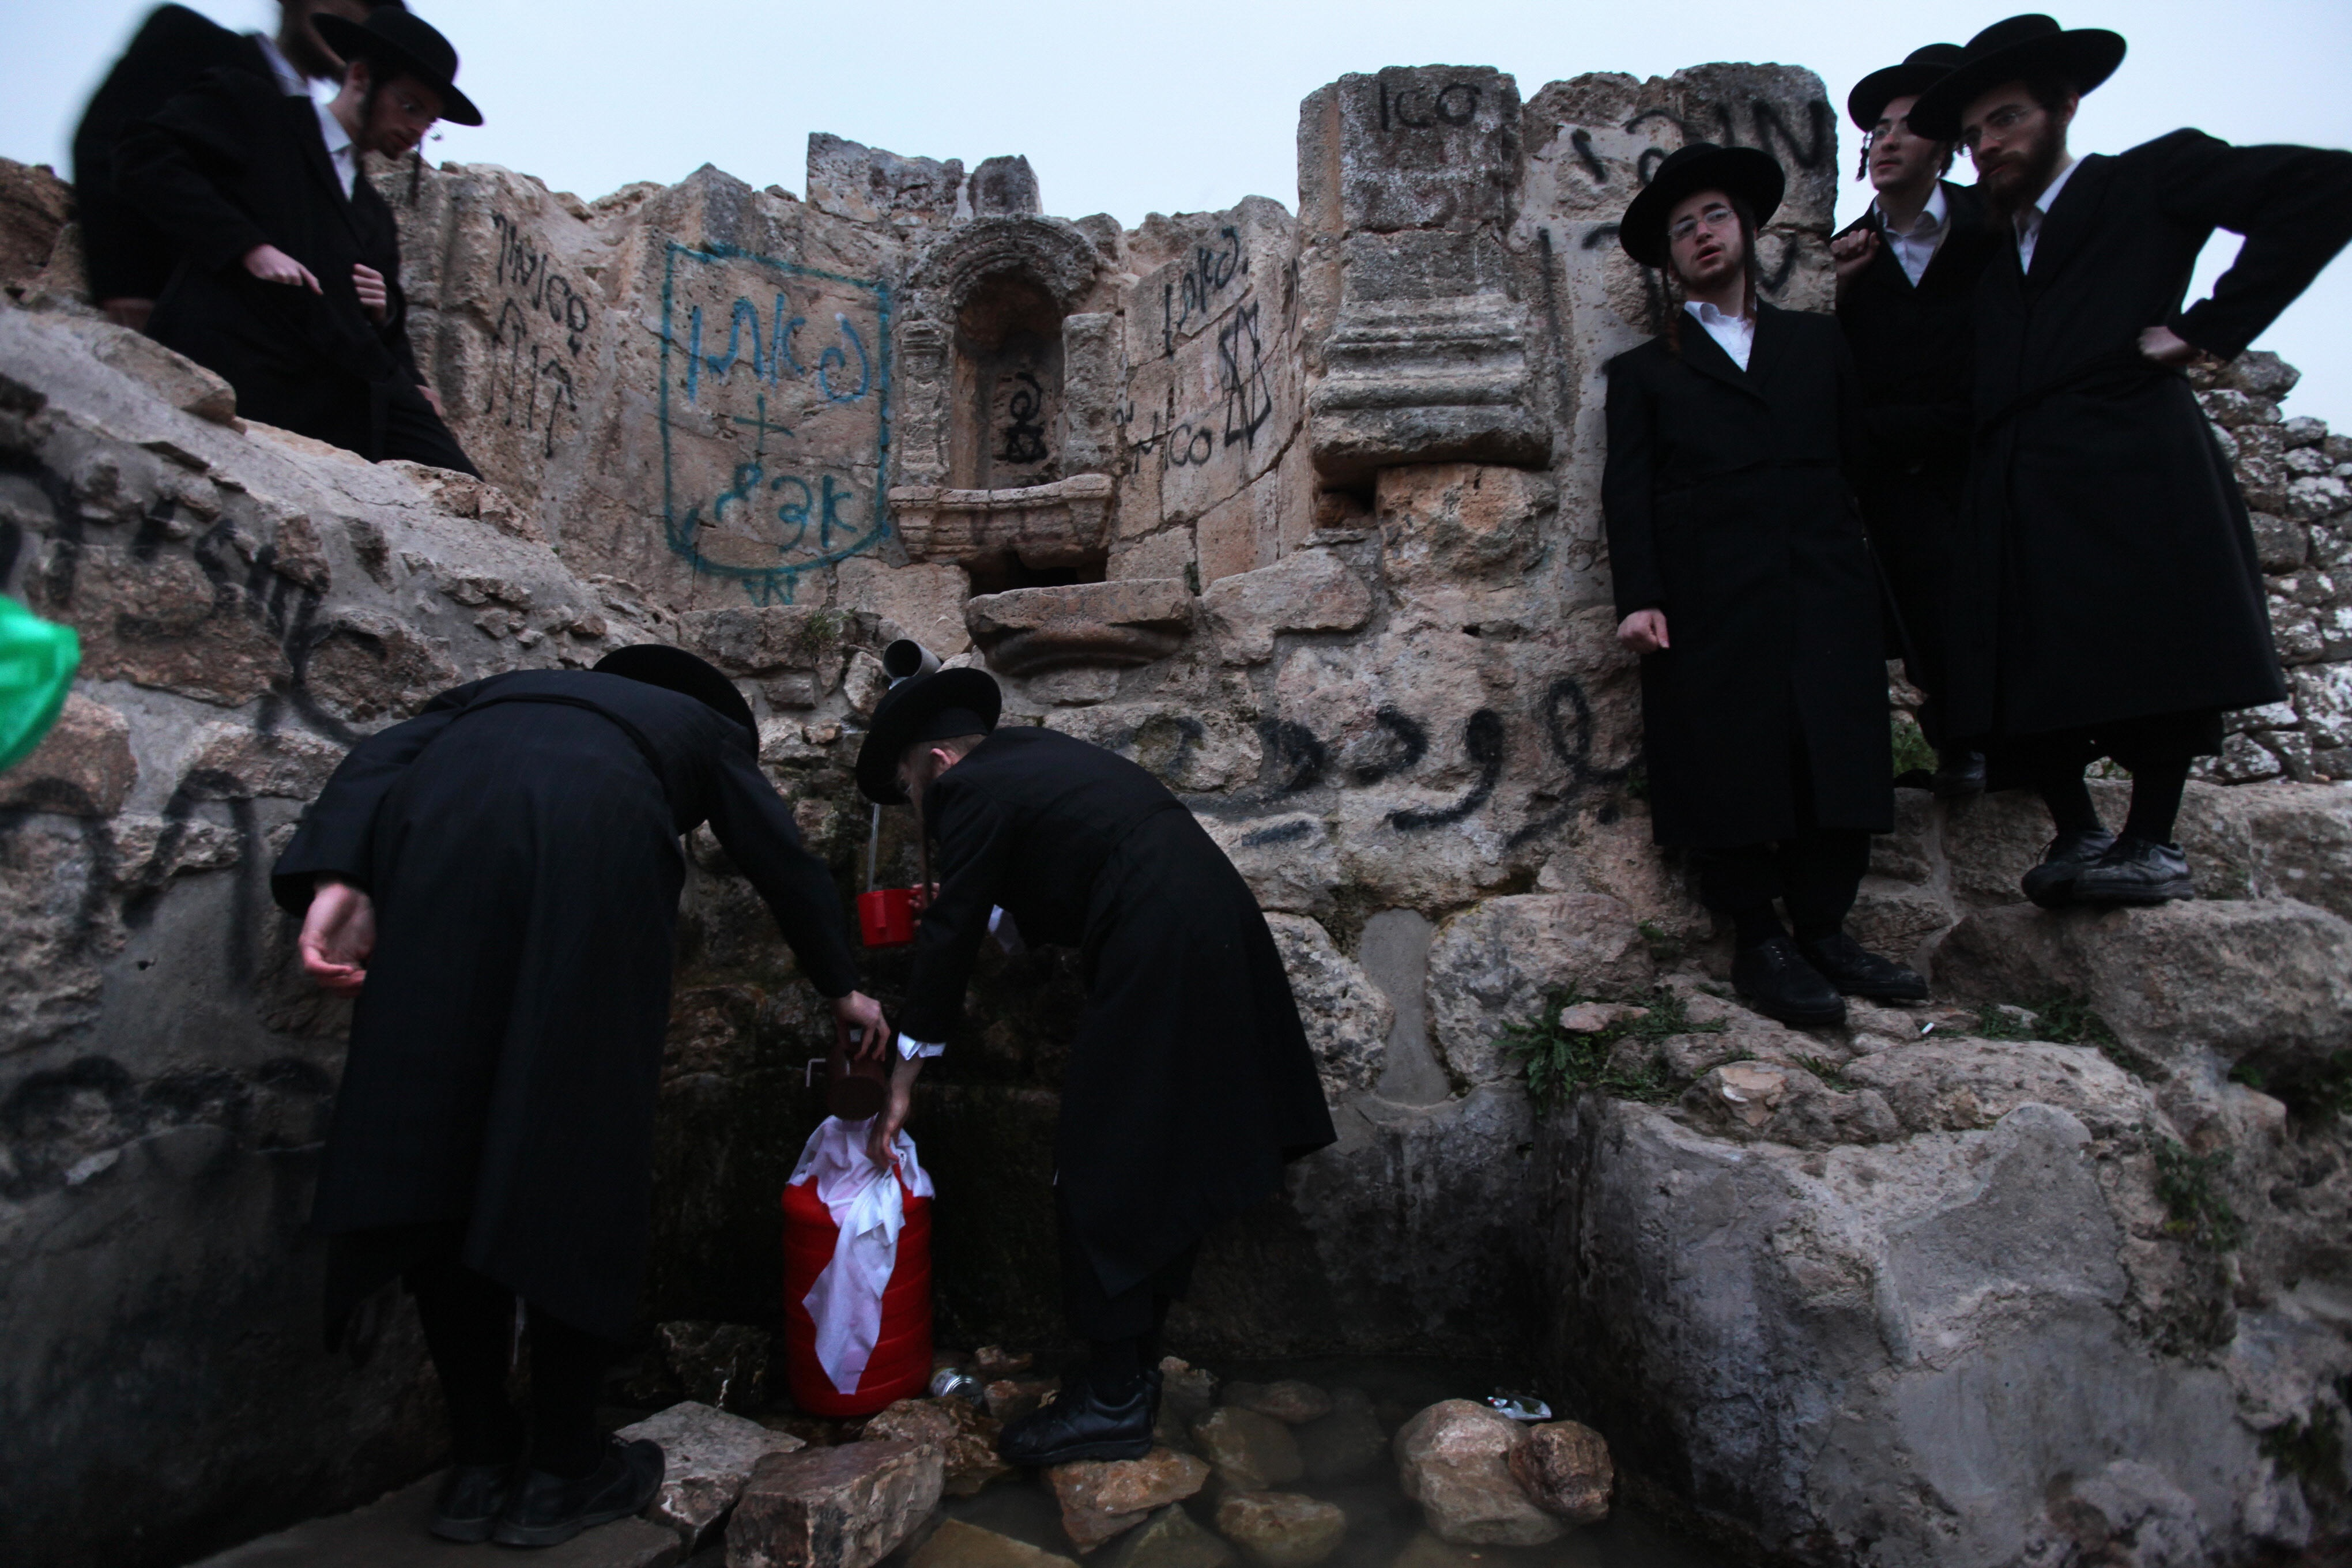 MENAHEM KAHANA/AFP/Getty Images. Ultra-Orthodox Jews fill their plastic containers with water from an ancient mountain spring near Jerusalem on April 6, 2009 during the Maim Shelanu (rested water) ceremony in preparation for the Pesach holiday (Passover). The water is used in baking the unleavened bread, known in Hebrew as Matzoh, which religious Jews throughout the world eat during the eight-day holiday. This year, Passover --commemorating the Israelites' exodus from Egypt some 3,500 years ago -- will begin at sunset on April 8.